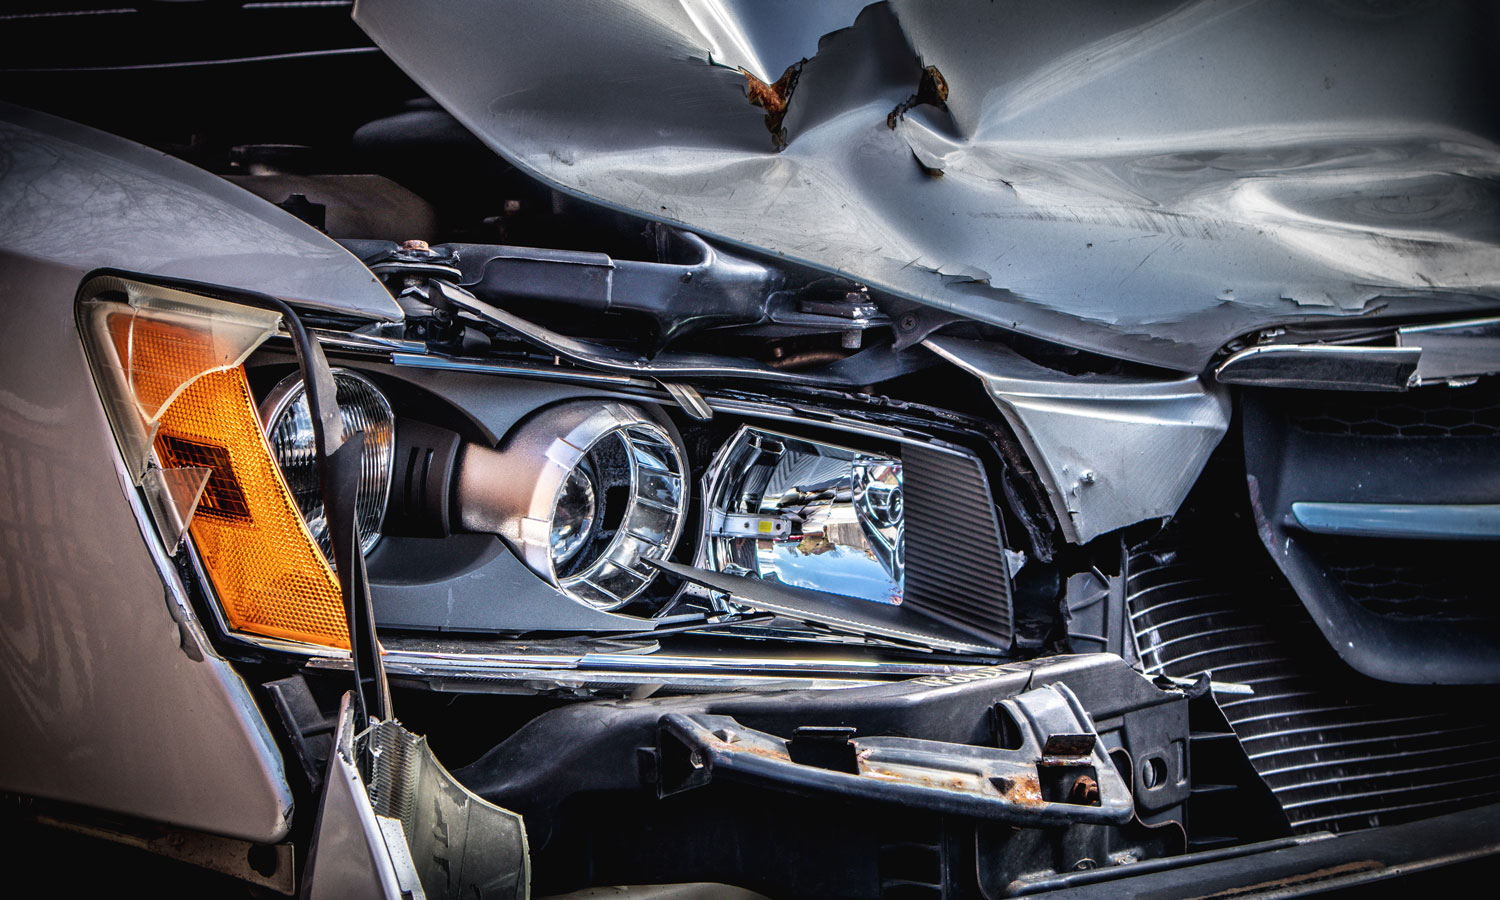 Uninsured auto insurance 101: What you need to know